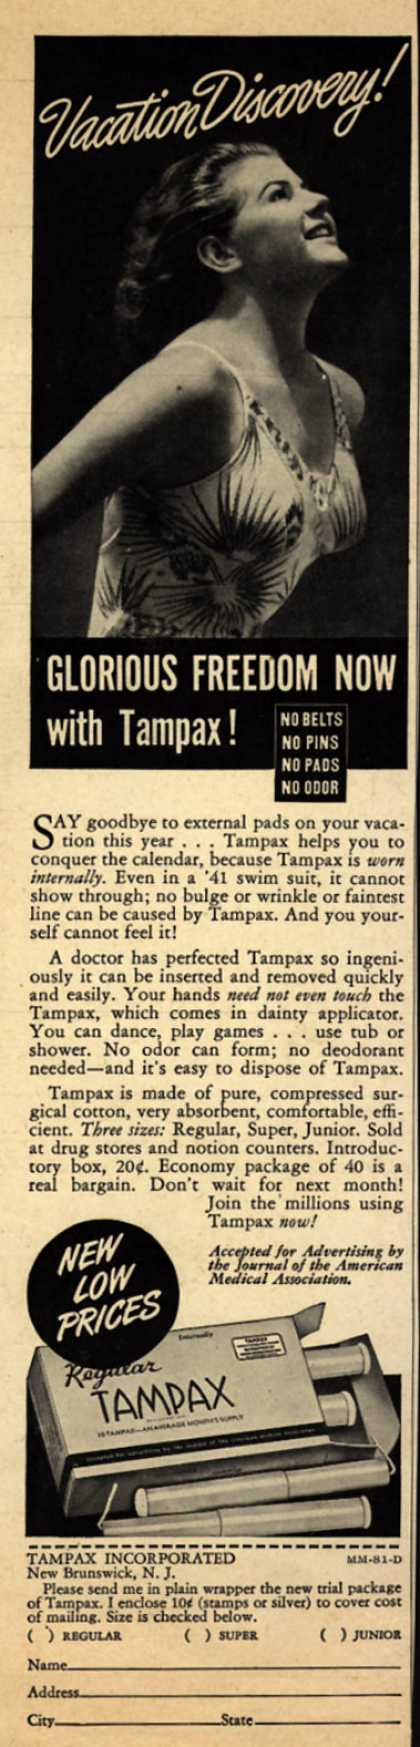 Tampax's Tampons – Vacation Discovery! Glorious Freedom Now with Tampax (1941)